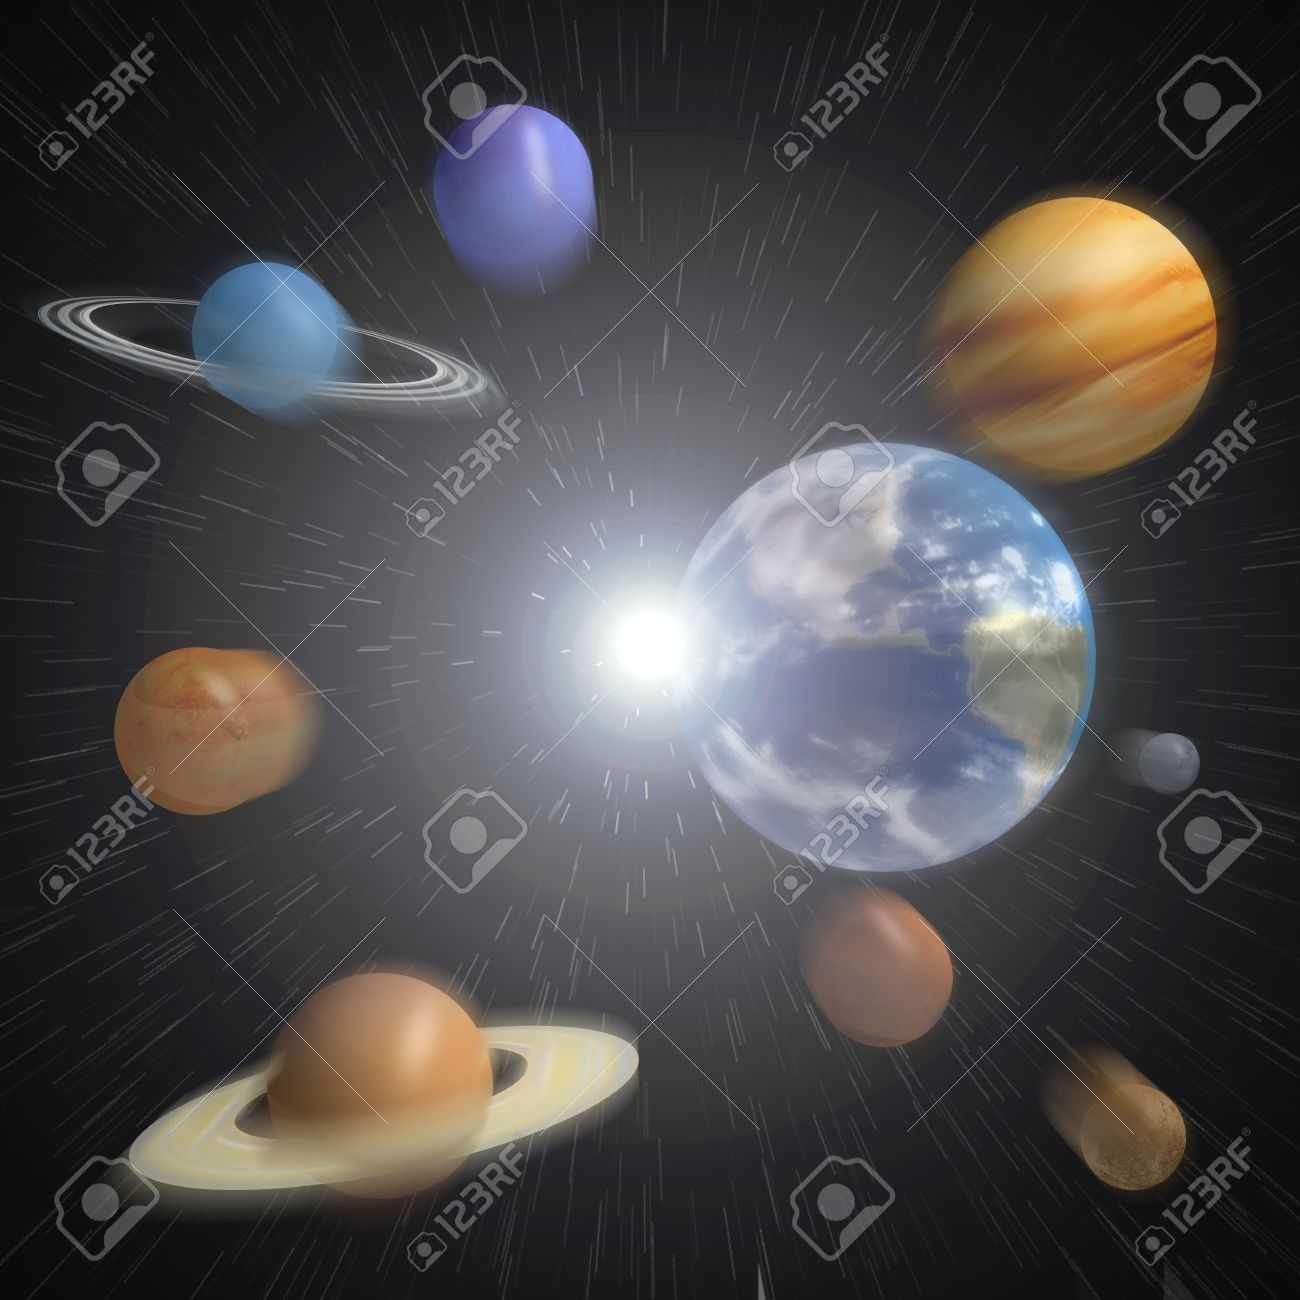 The Planets Of Our Solar System Emerging From An Explosion ...